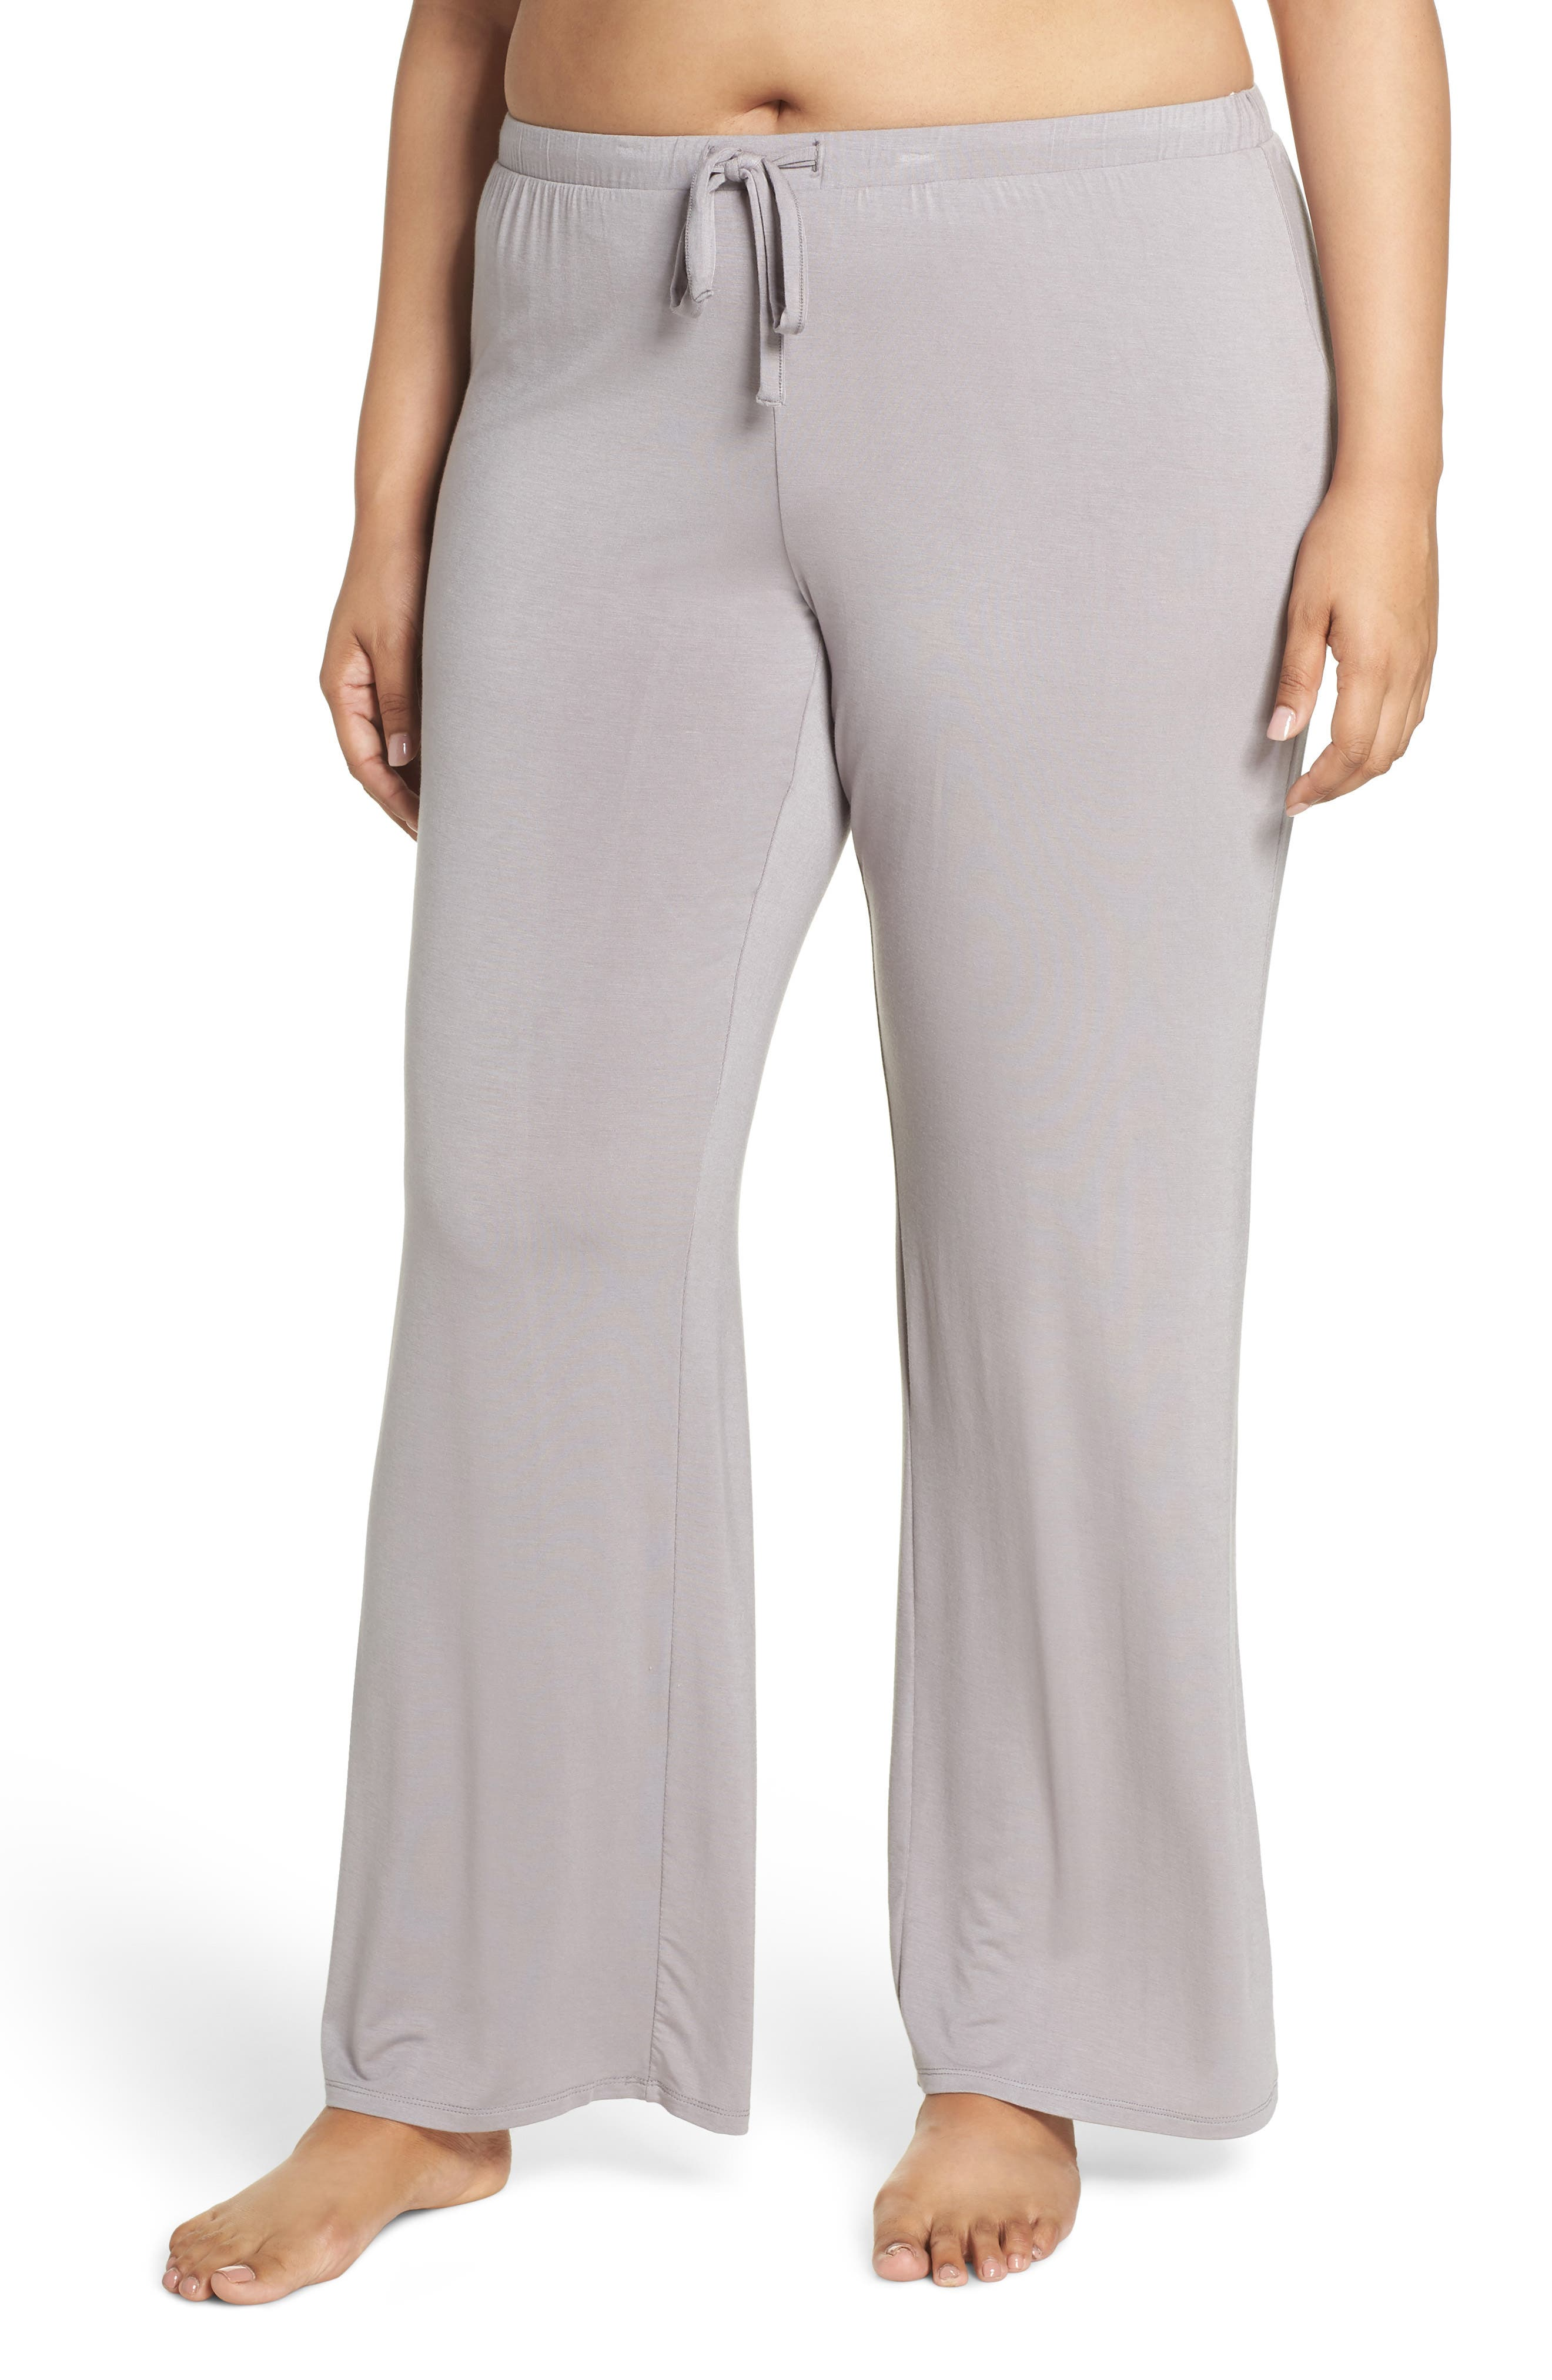 Breathe Lounge Pants,                         Main,                         color, GREY GULL